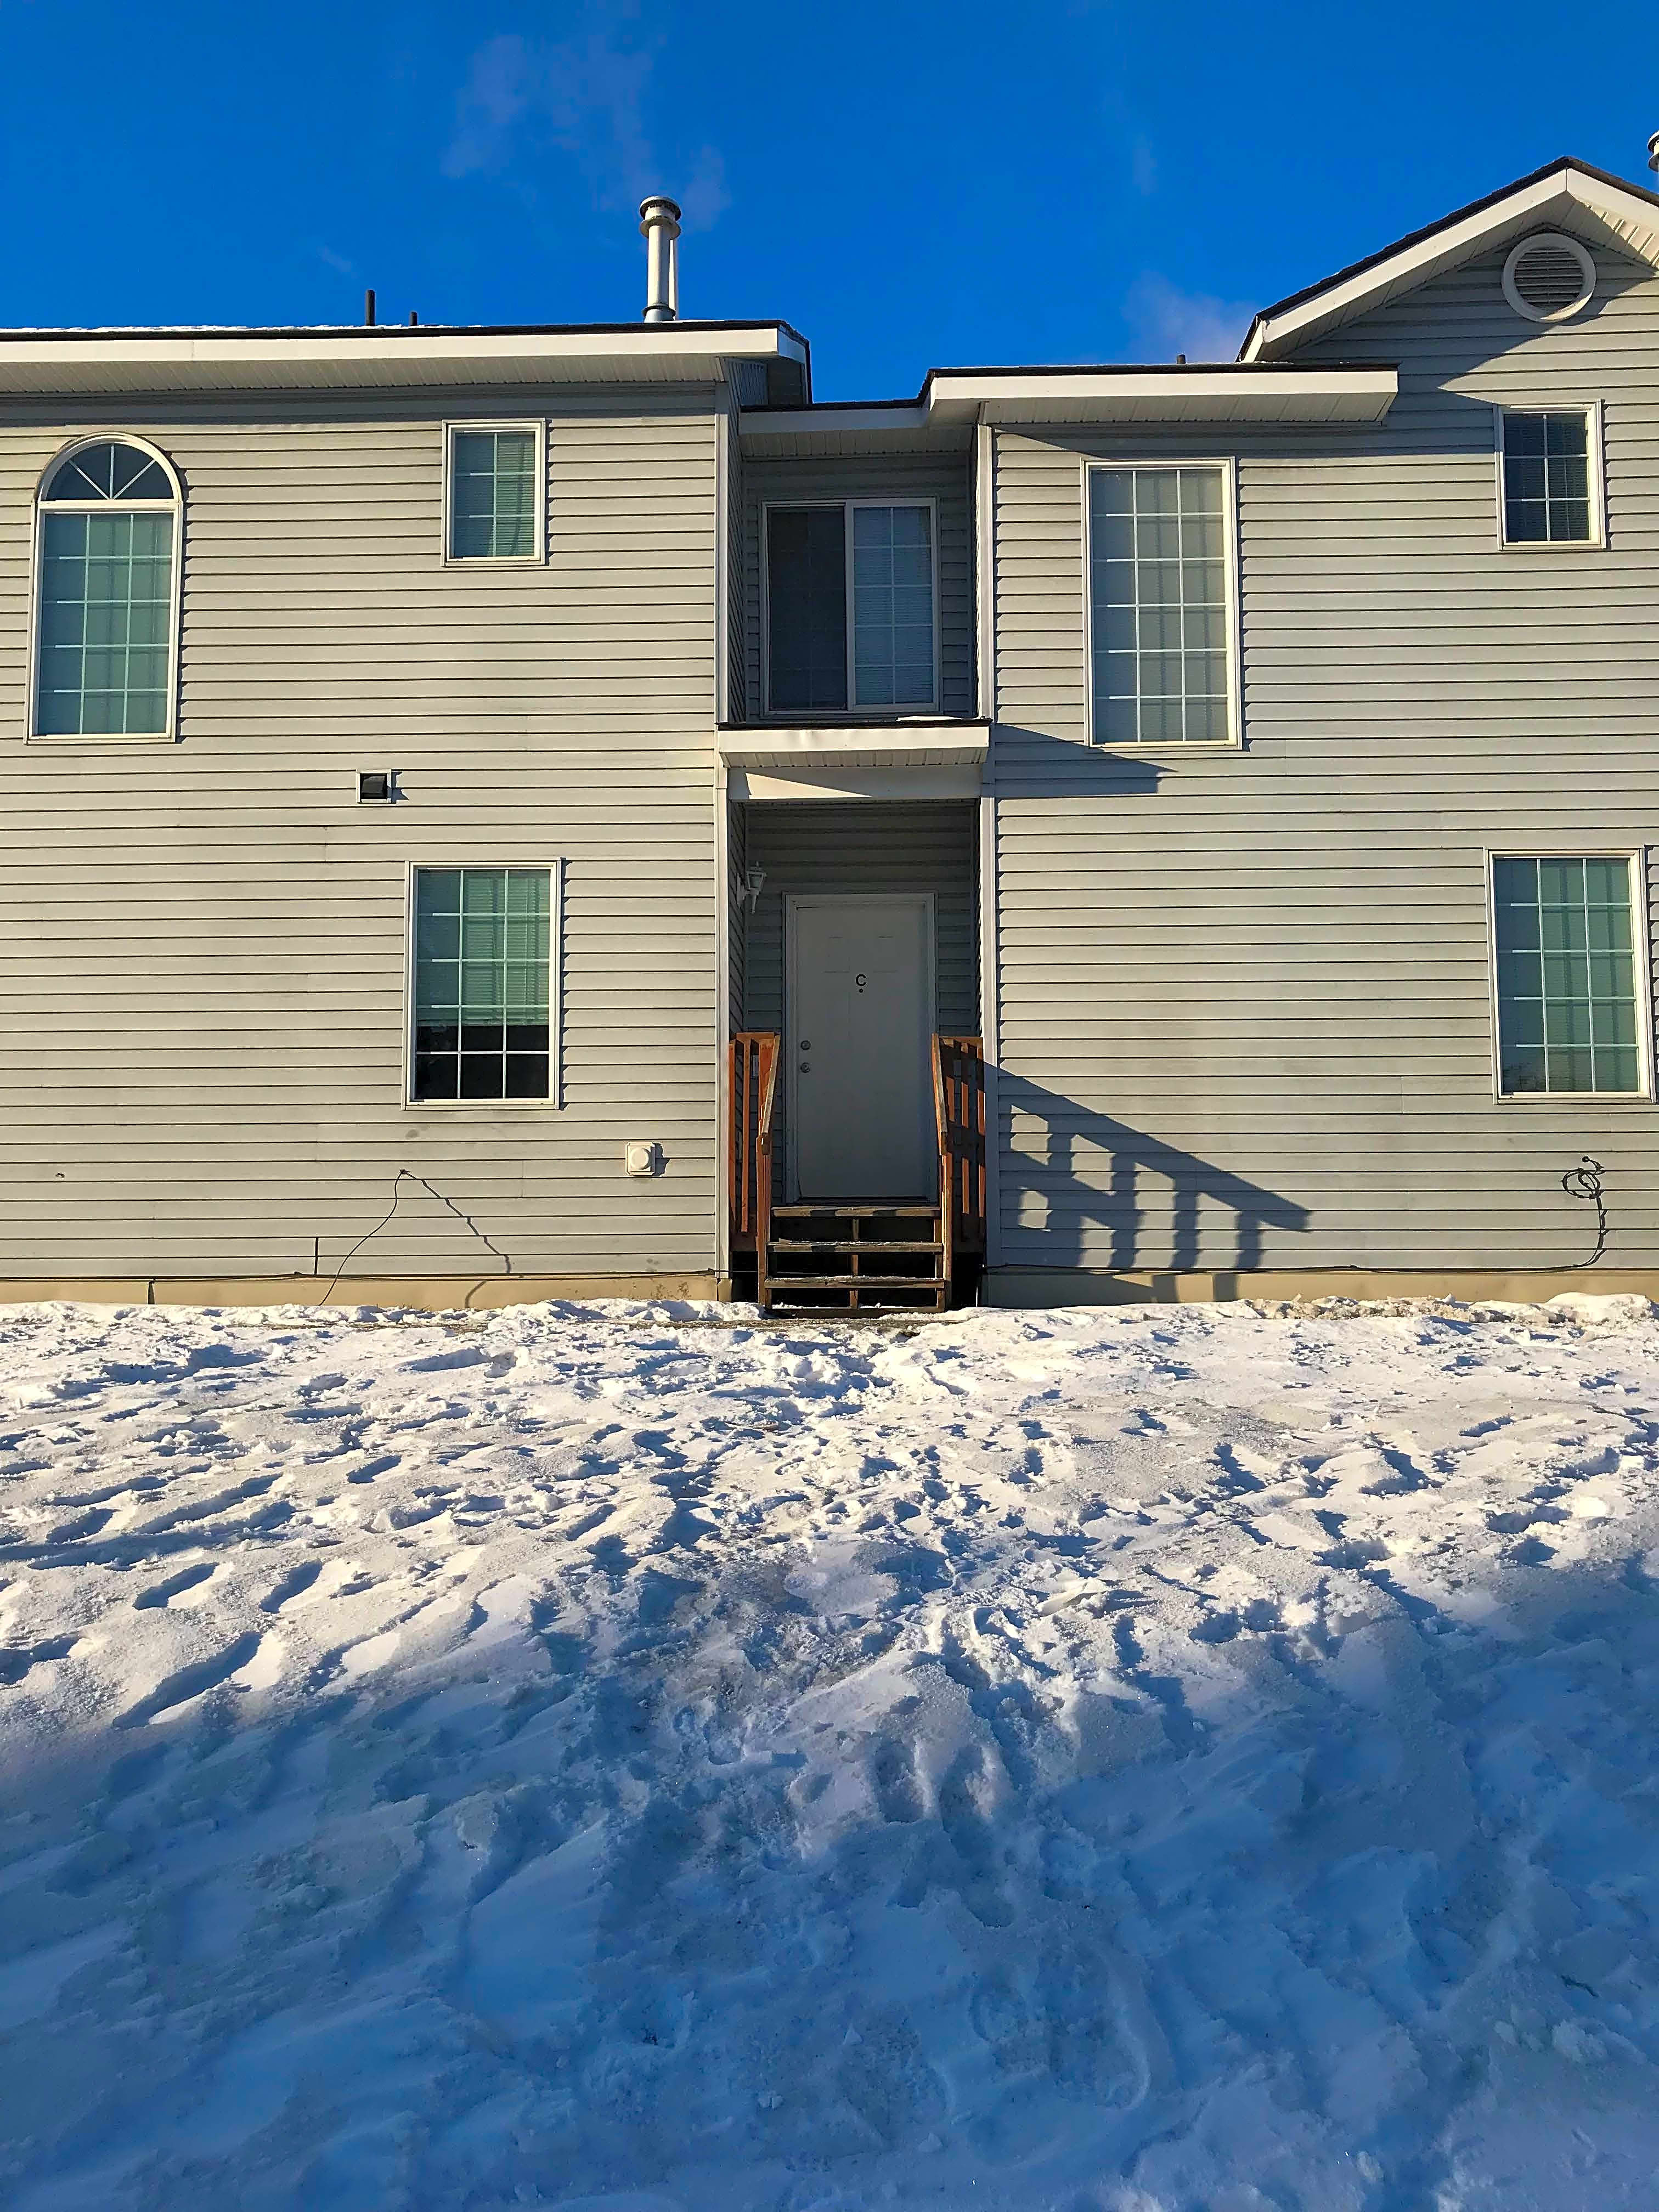 Condo for Rent in Anchorage